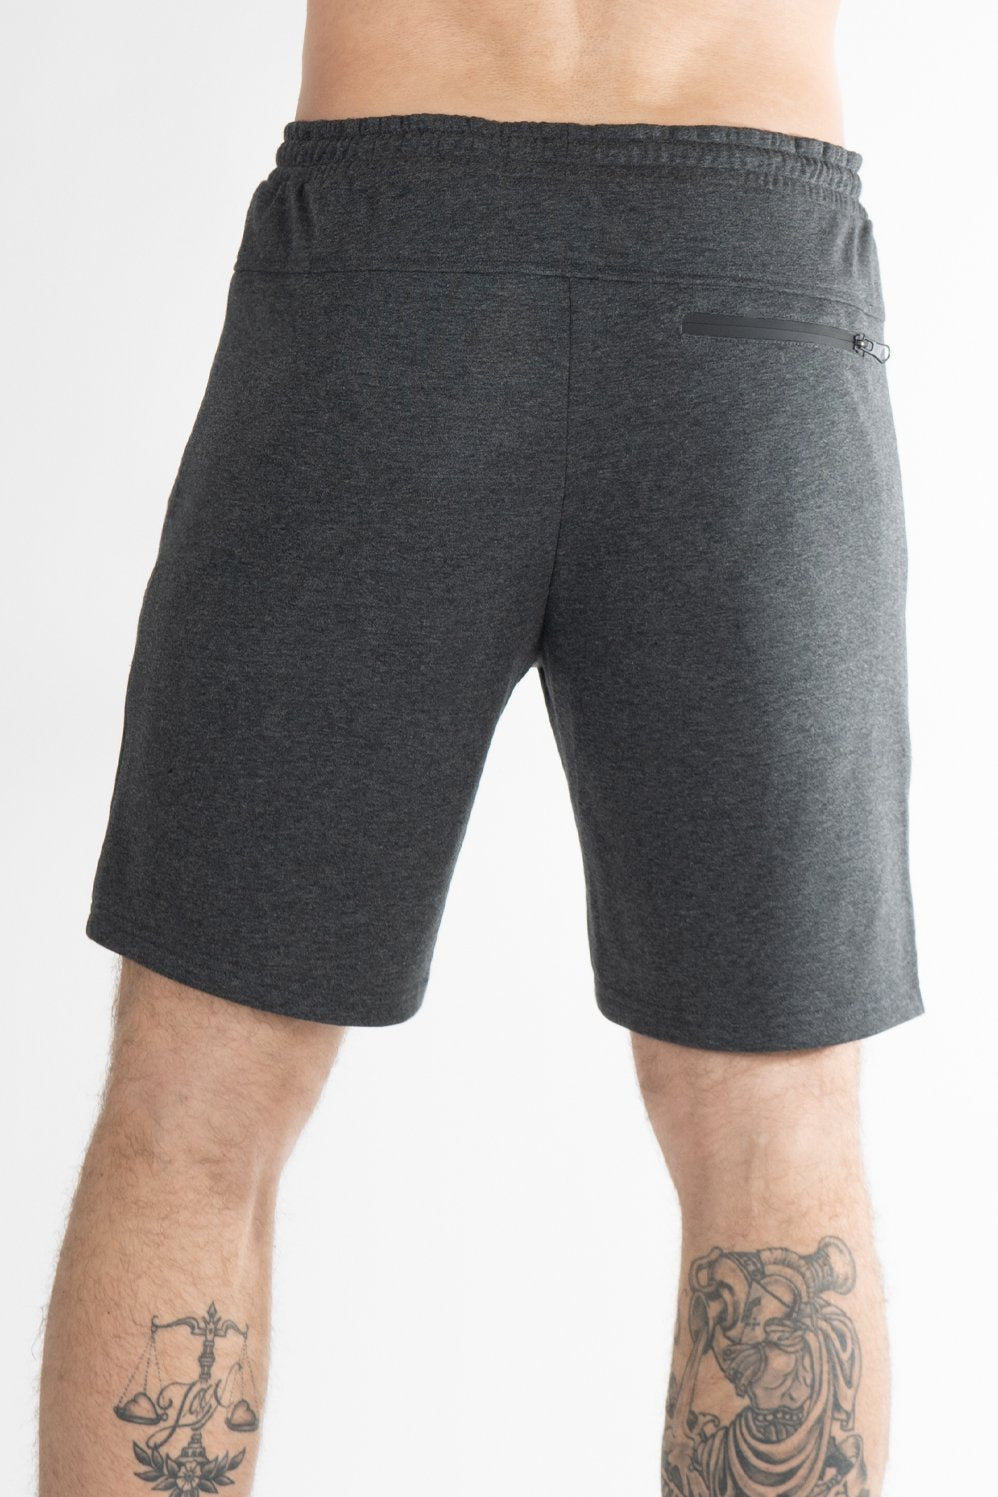 TECH shorts ANTHRACITE - Own-Wear